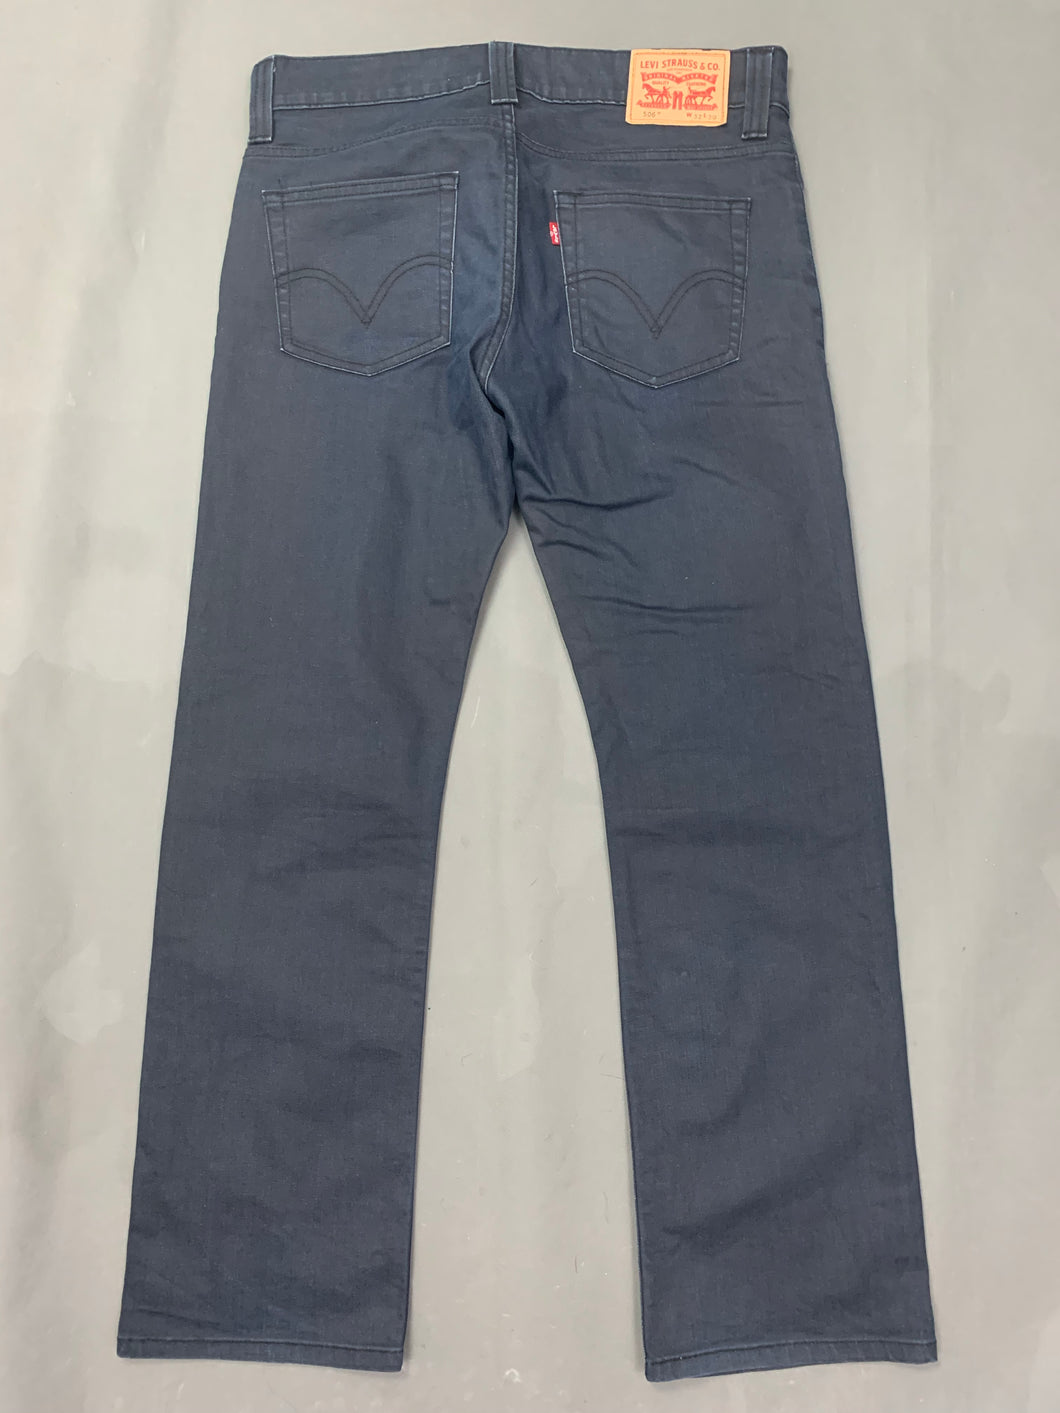 LEVI STRAUSS &Co LEVI'S Blue Denim 506 JEANS Size Waist 32